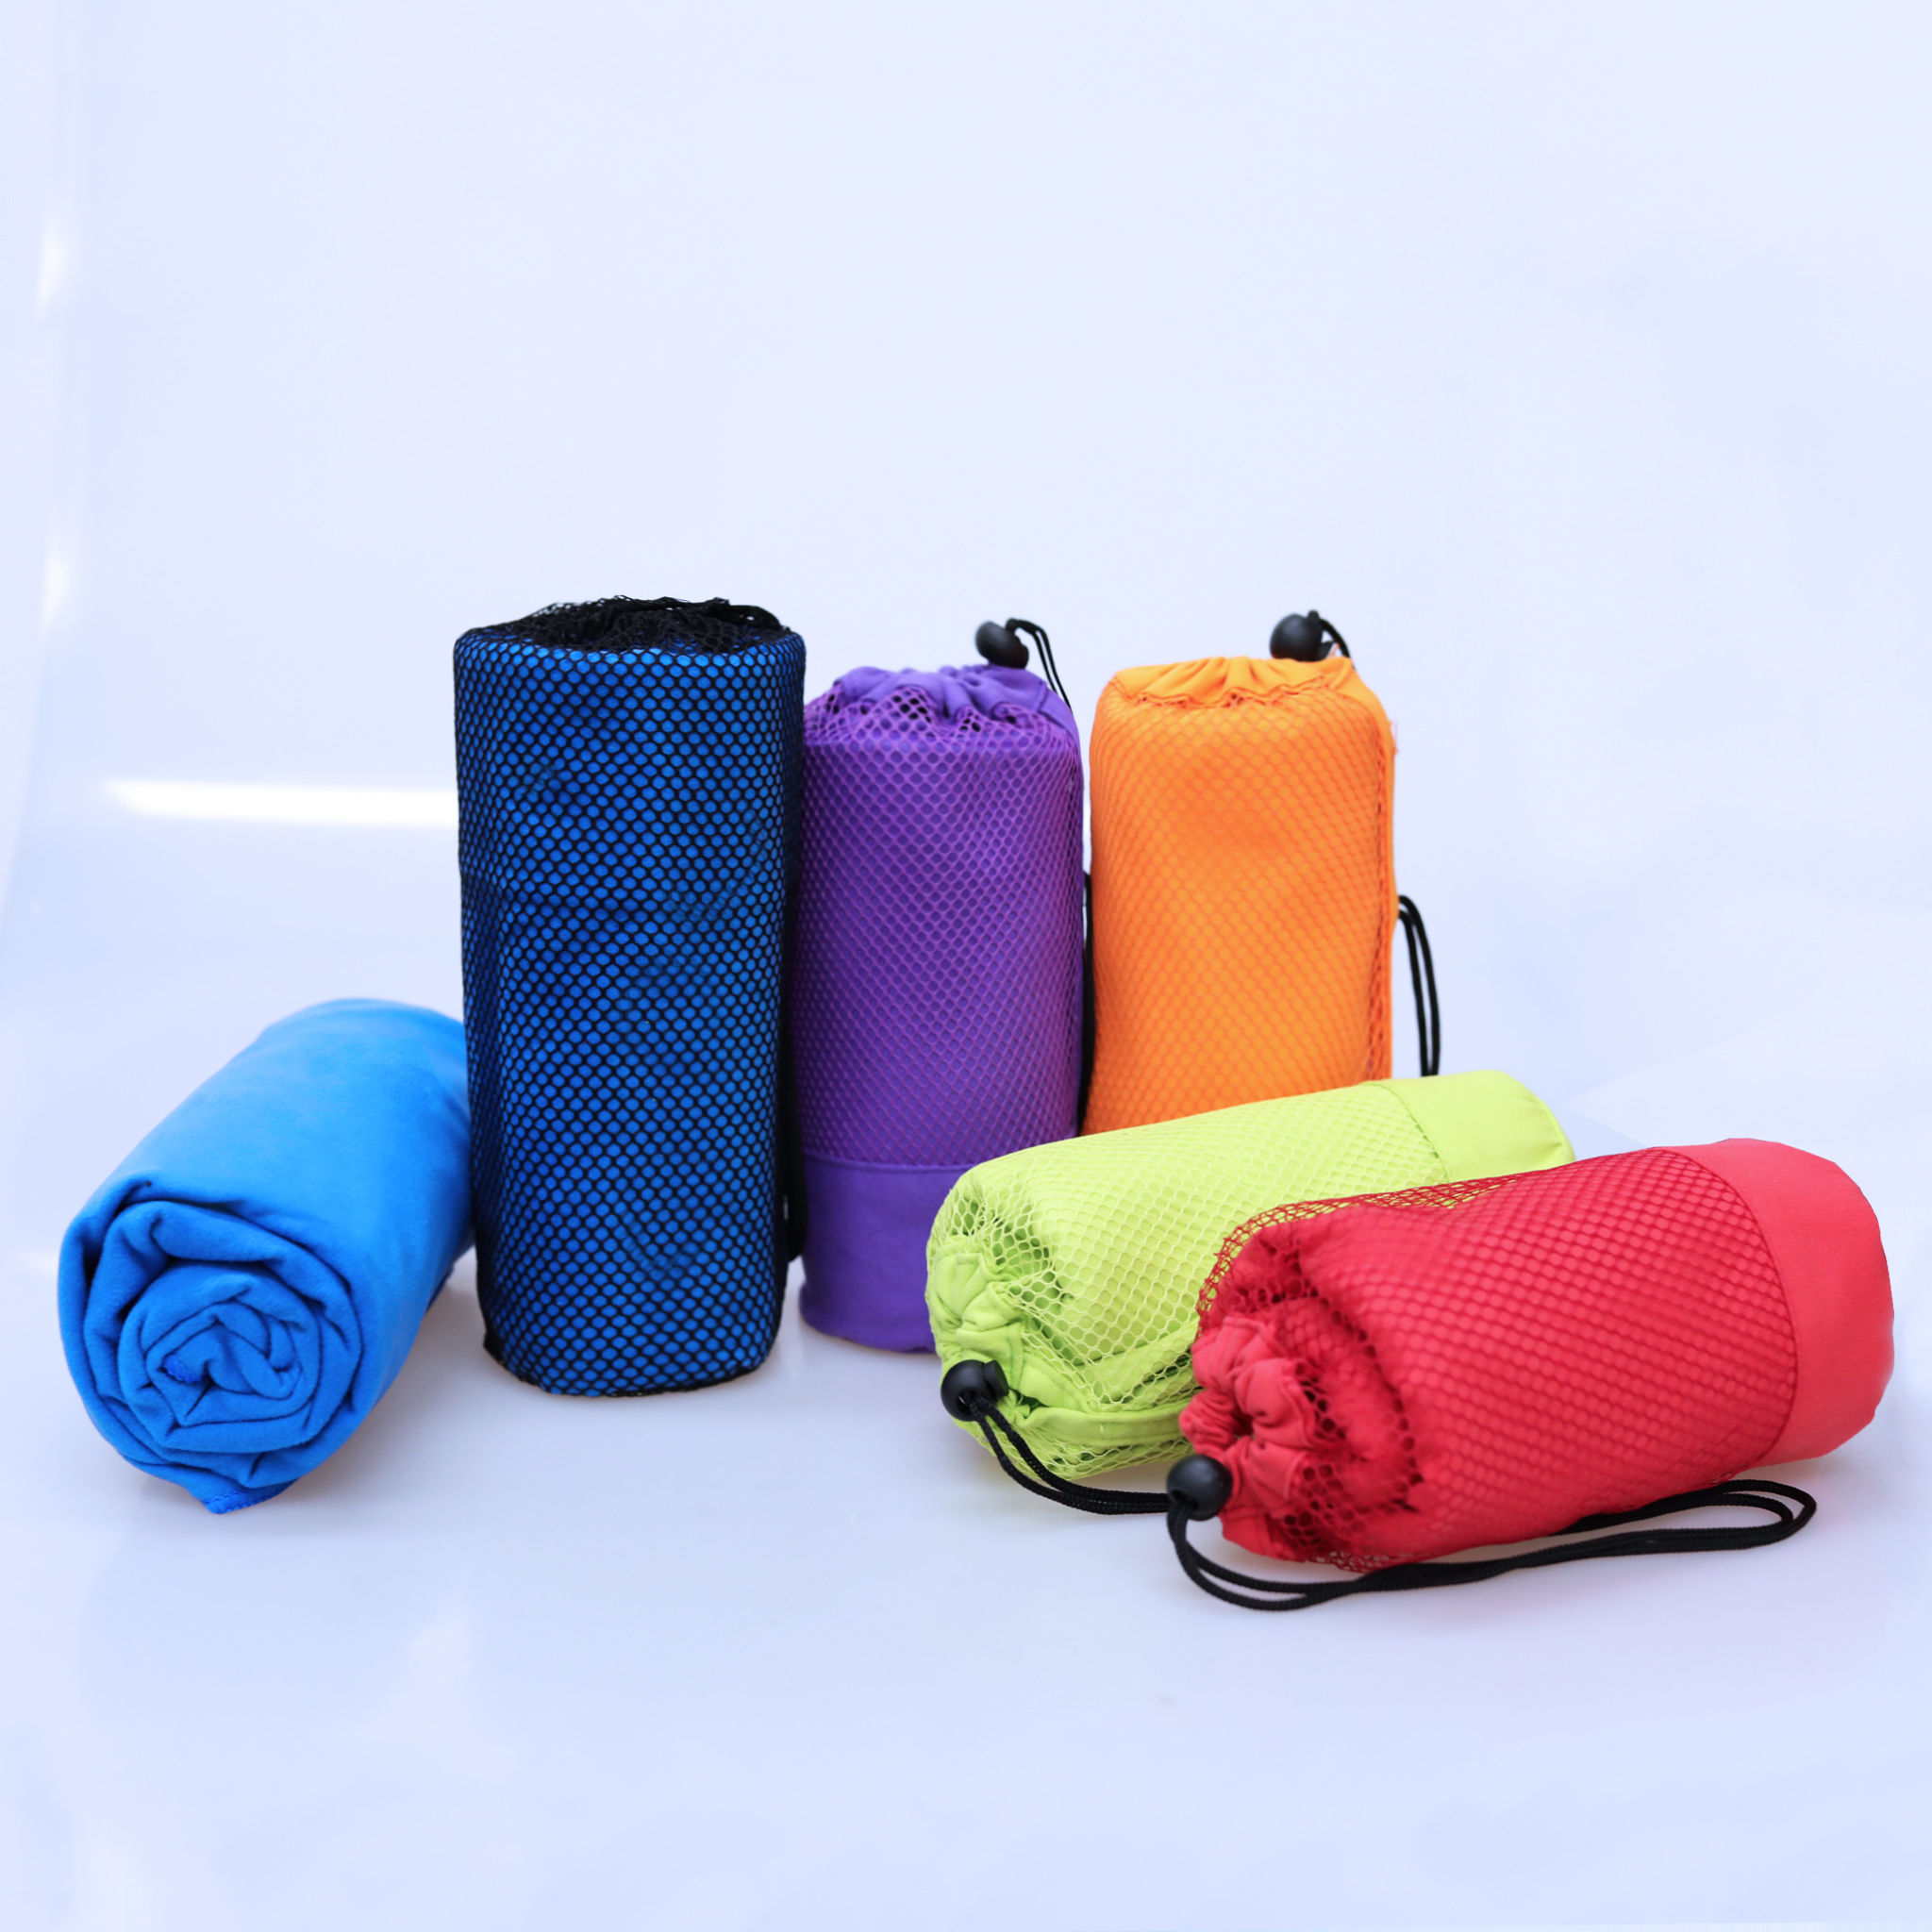 Dropshipping Gym Towel 70x130cm Larger Size Sports Towel With Bag Microfiber Swimming Travel Toalha De Esportes